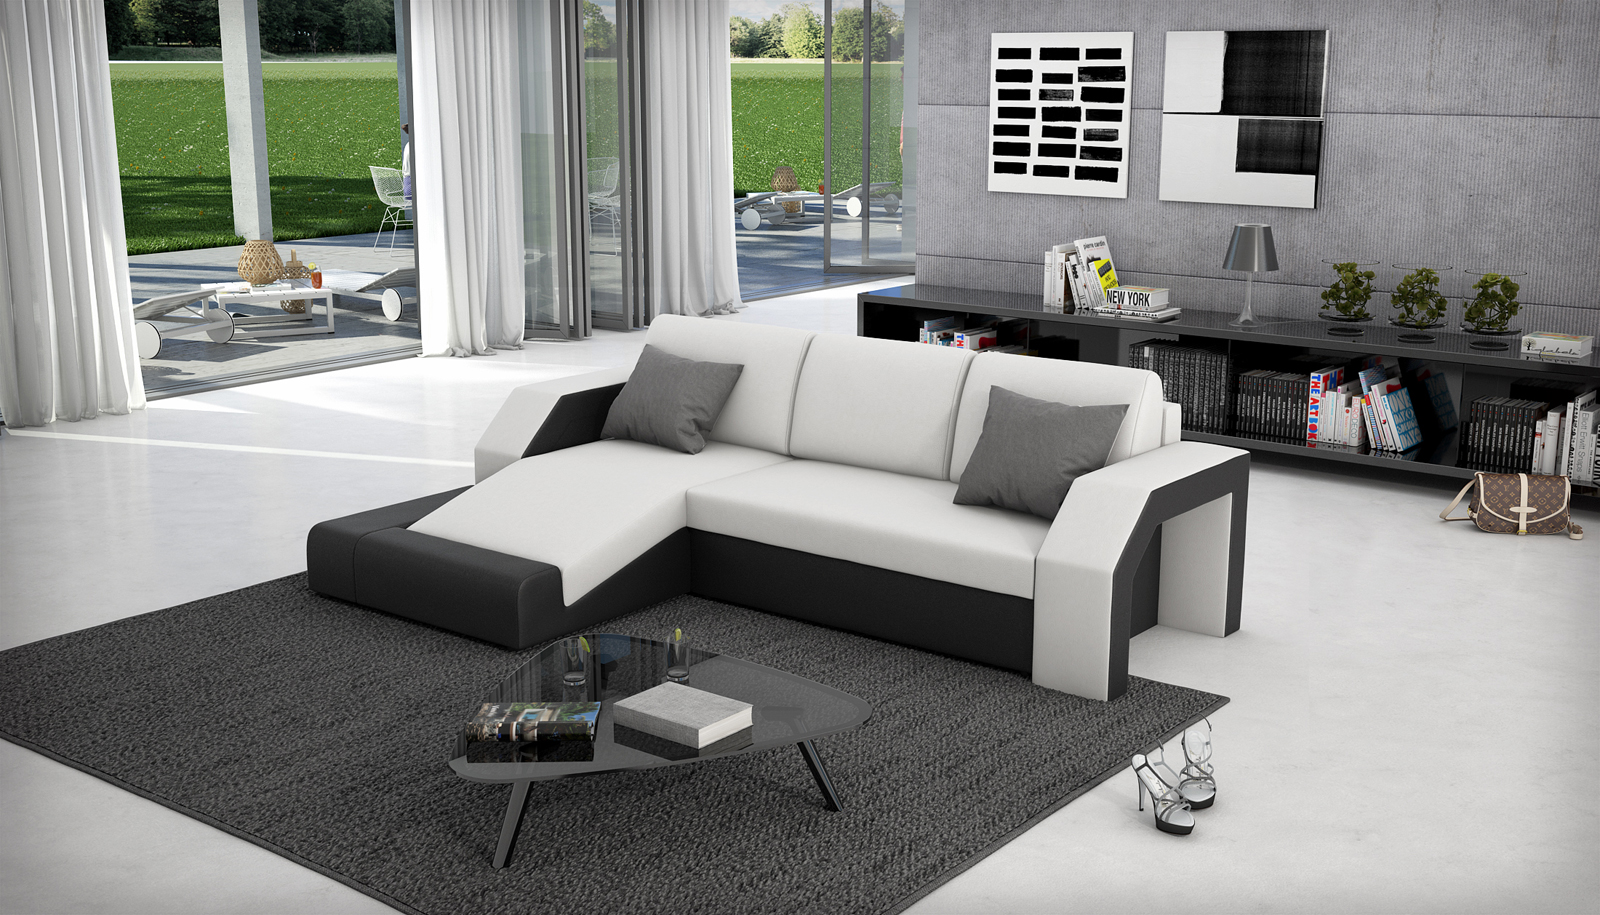 sam schlafsofa wei schwarz ecksofa milagro 145 x 281 cm. Black Bedroom Furniture Sets. Home Design Ideas